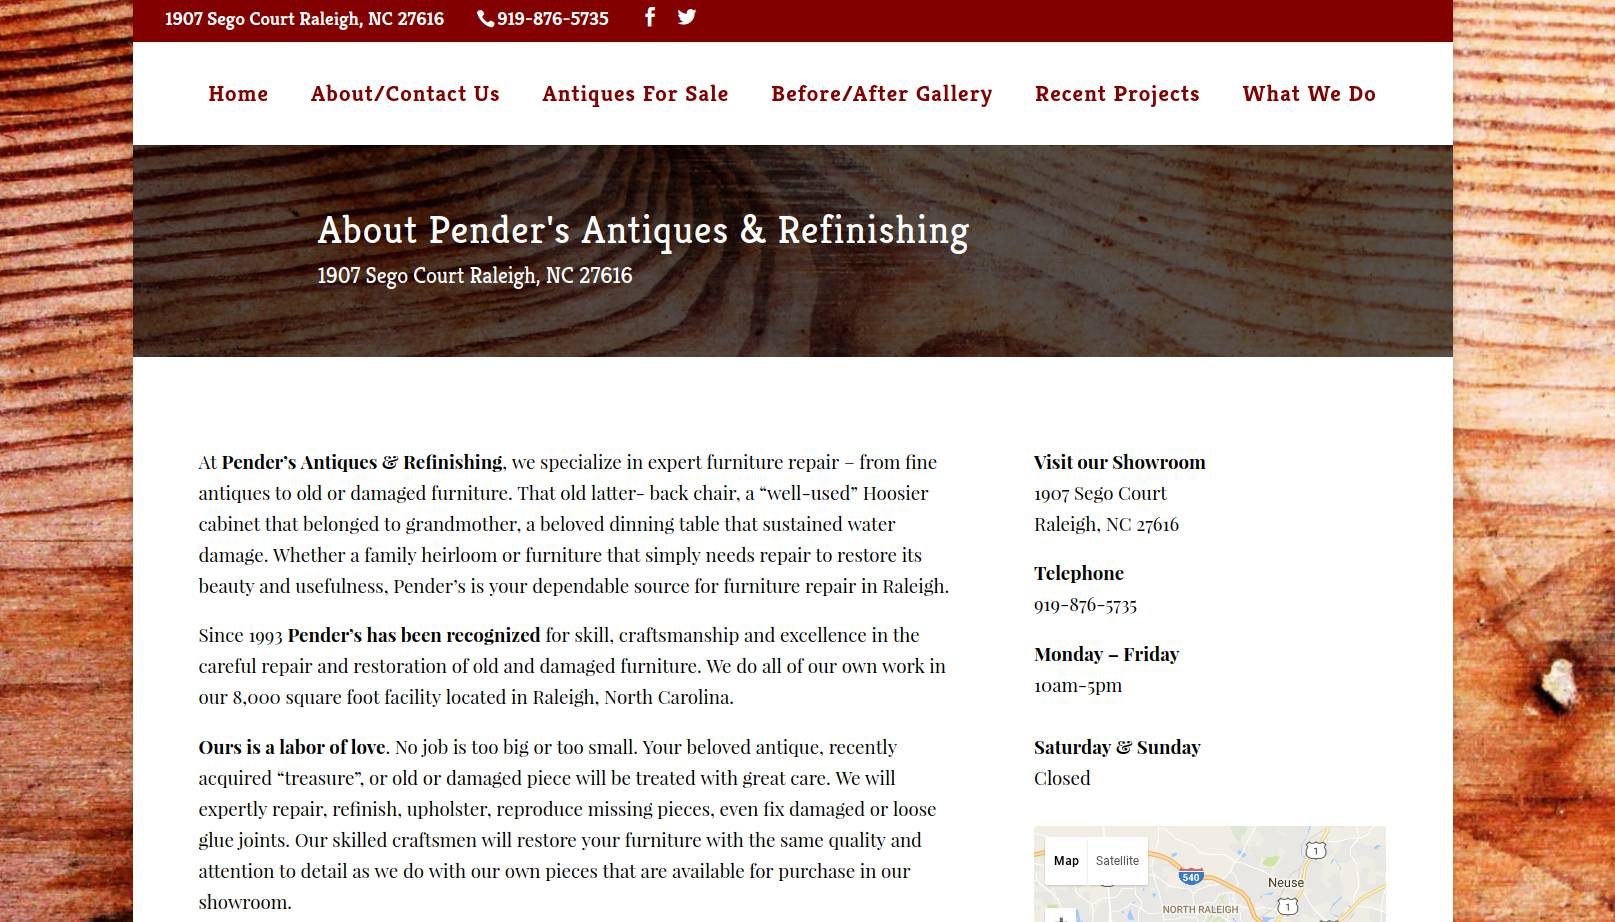 penders-antiques-contact-raleigh-nc